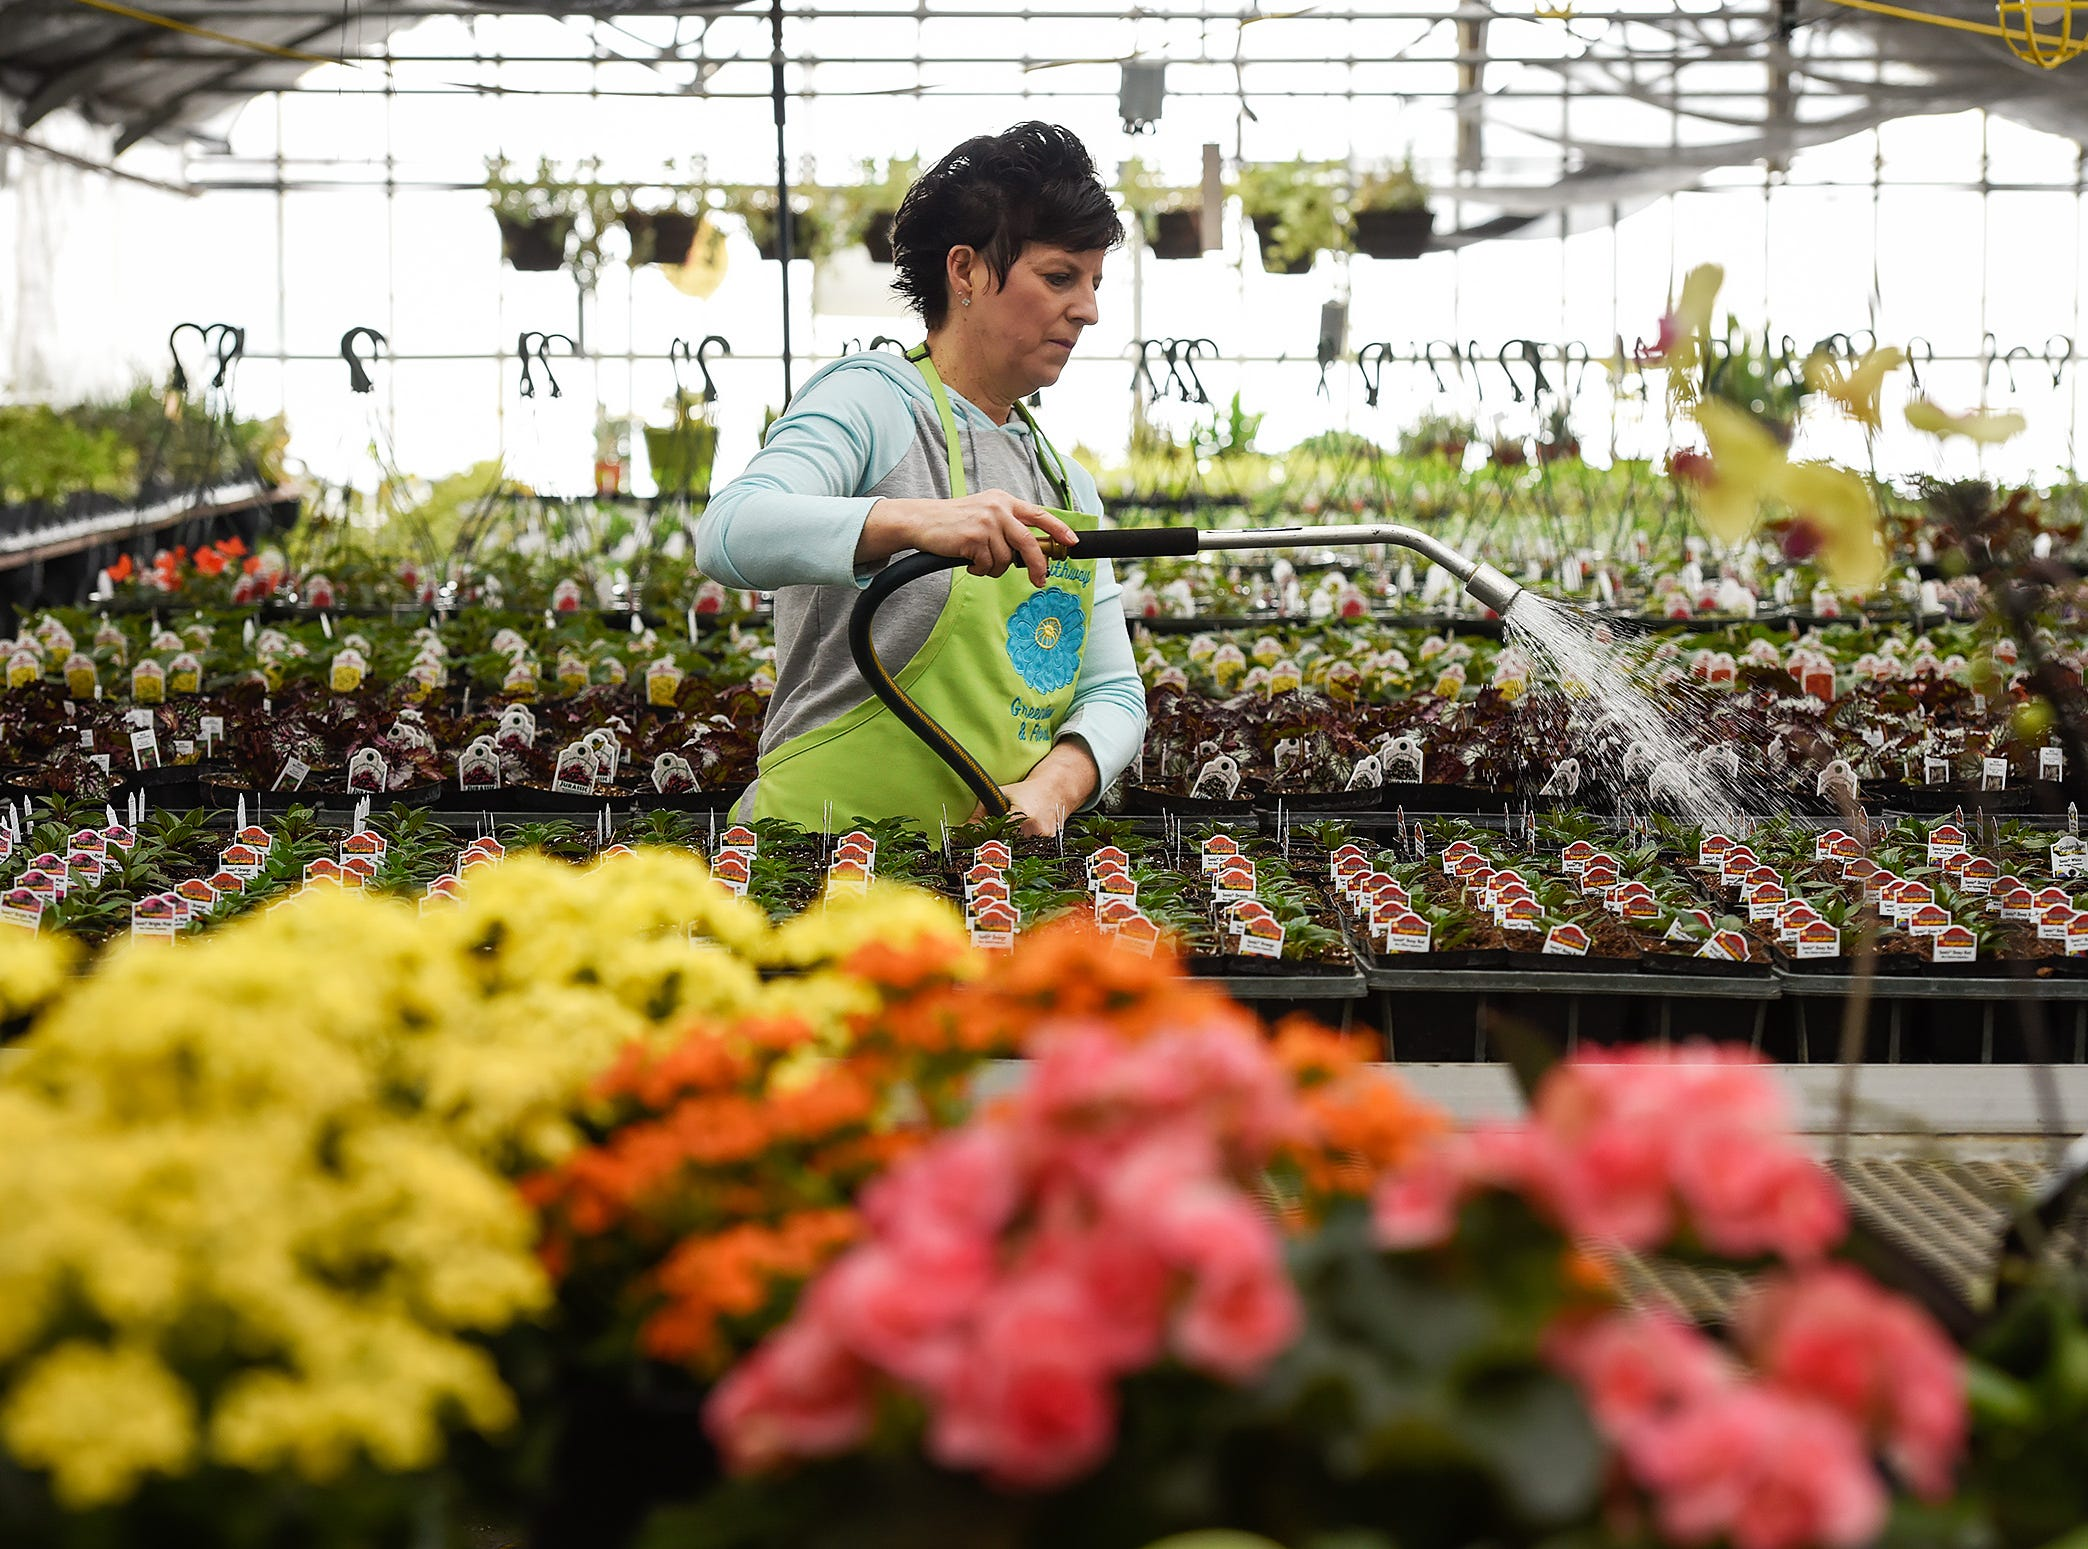 Owner Jackie Notch fertilizes and waters young plants Tuesday, March 6, at Southway Greenhouse & Florist. Production was in full swing right after Valentines Day potting plants and creating hanging baskets for spring. The staff will create about 1,000 assorted hanging baskets and 2,100 potted Geraniums for the season. The staff is quickly working to filling the six greenhouses by spring.